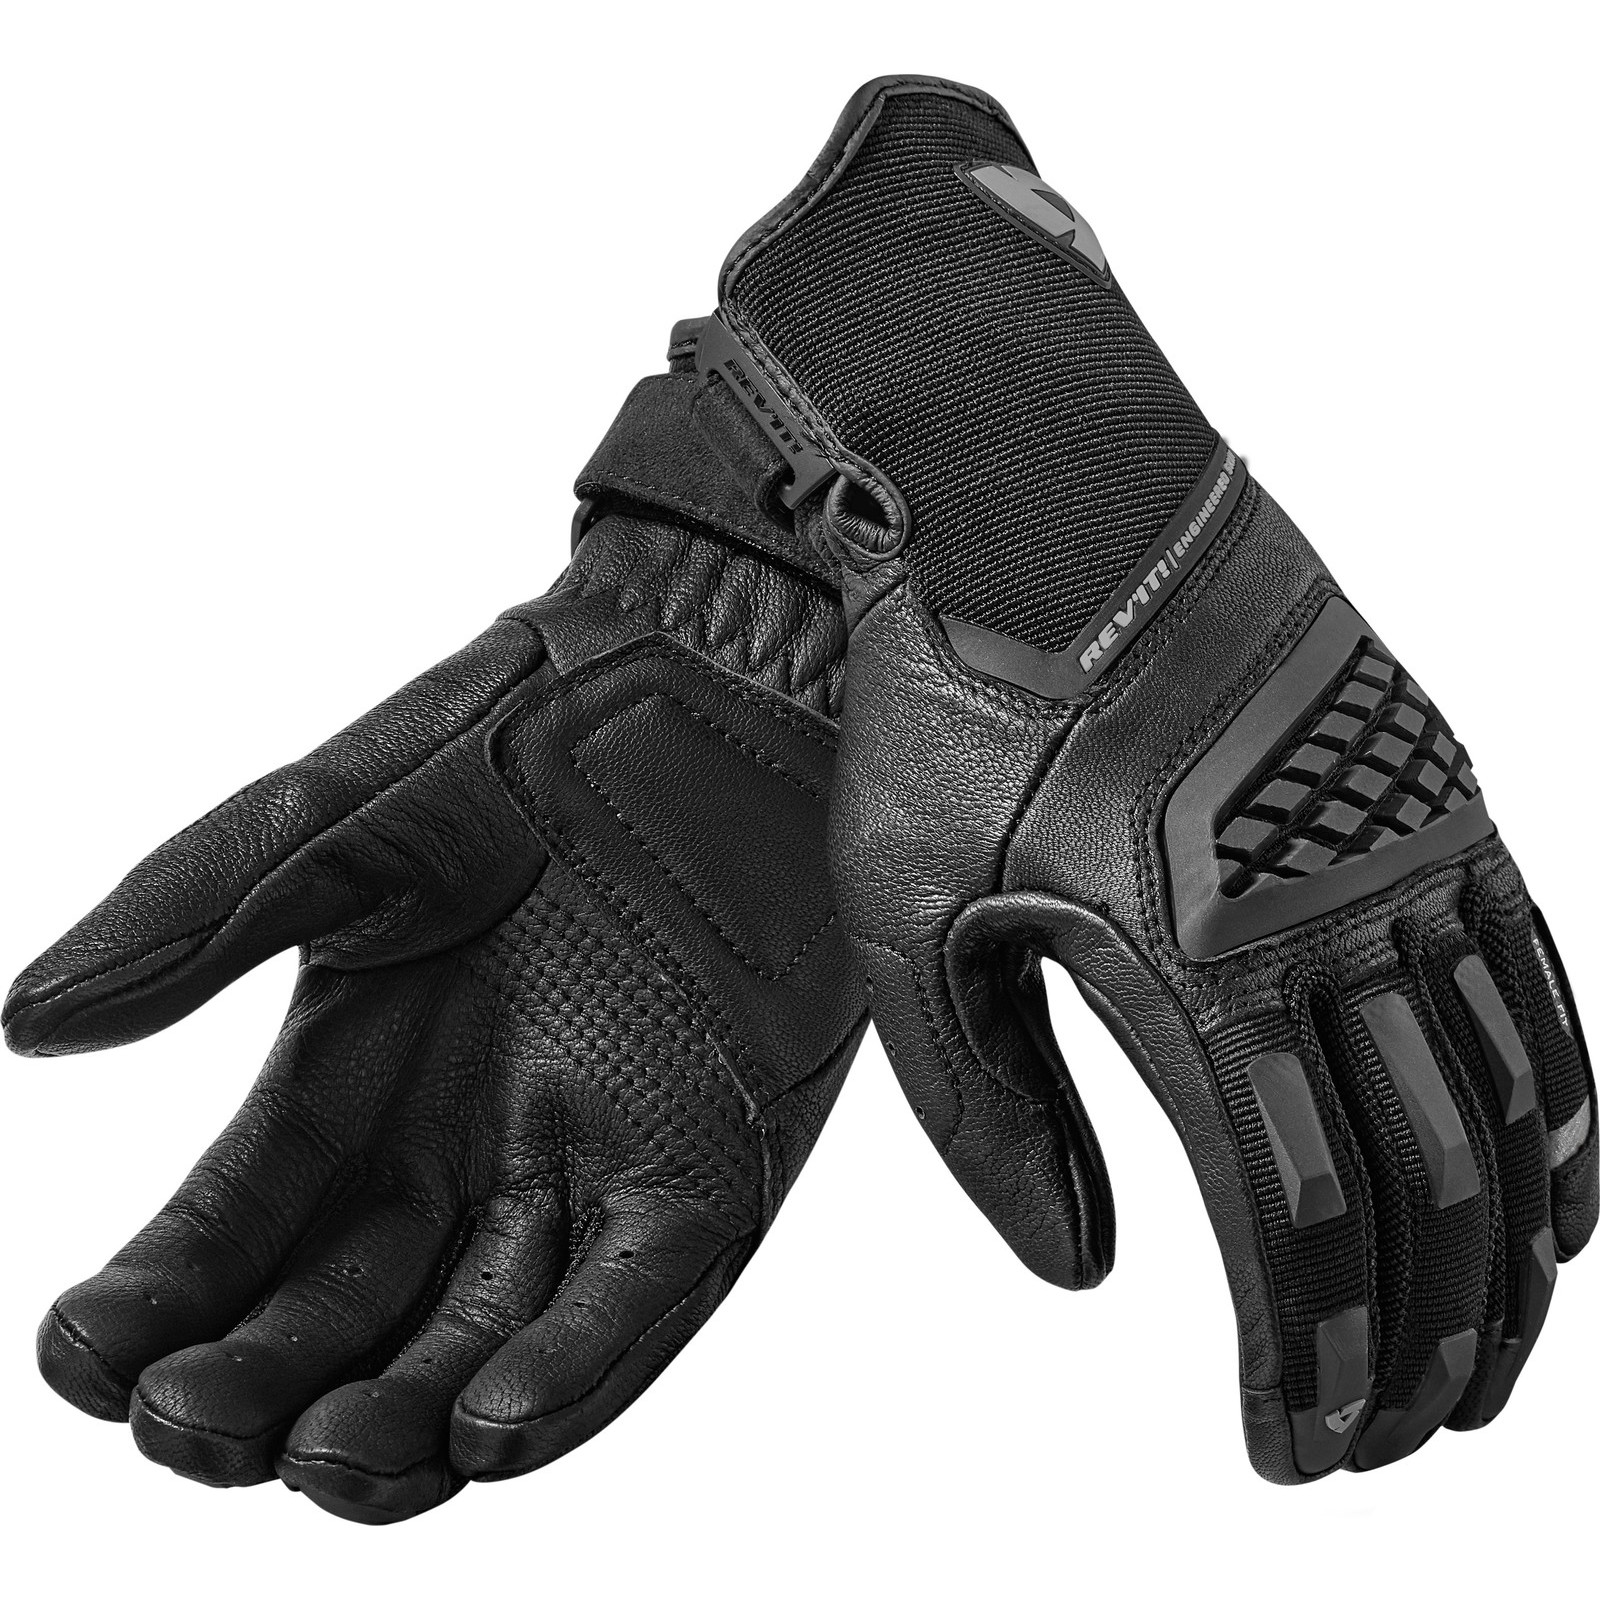 Womens leather biker gloves - Rev It Neutron 2 Ladies Leather Motorcycle Gloves